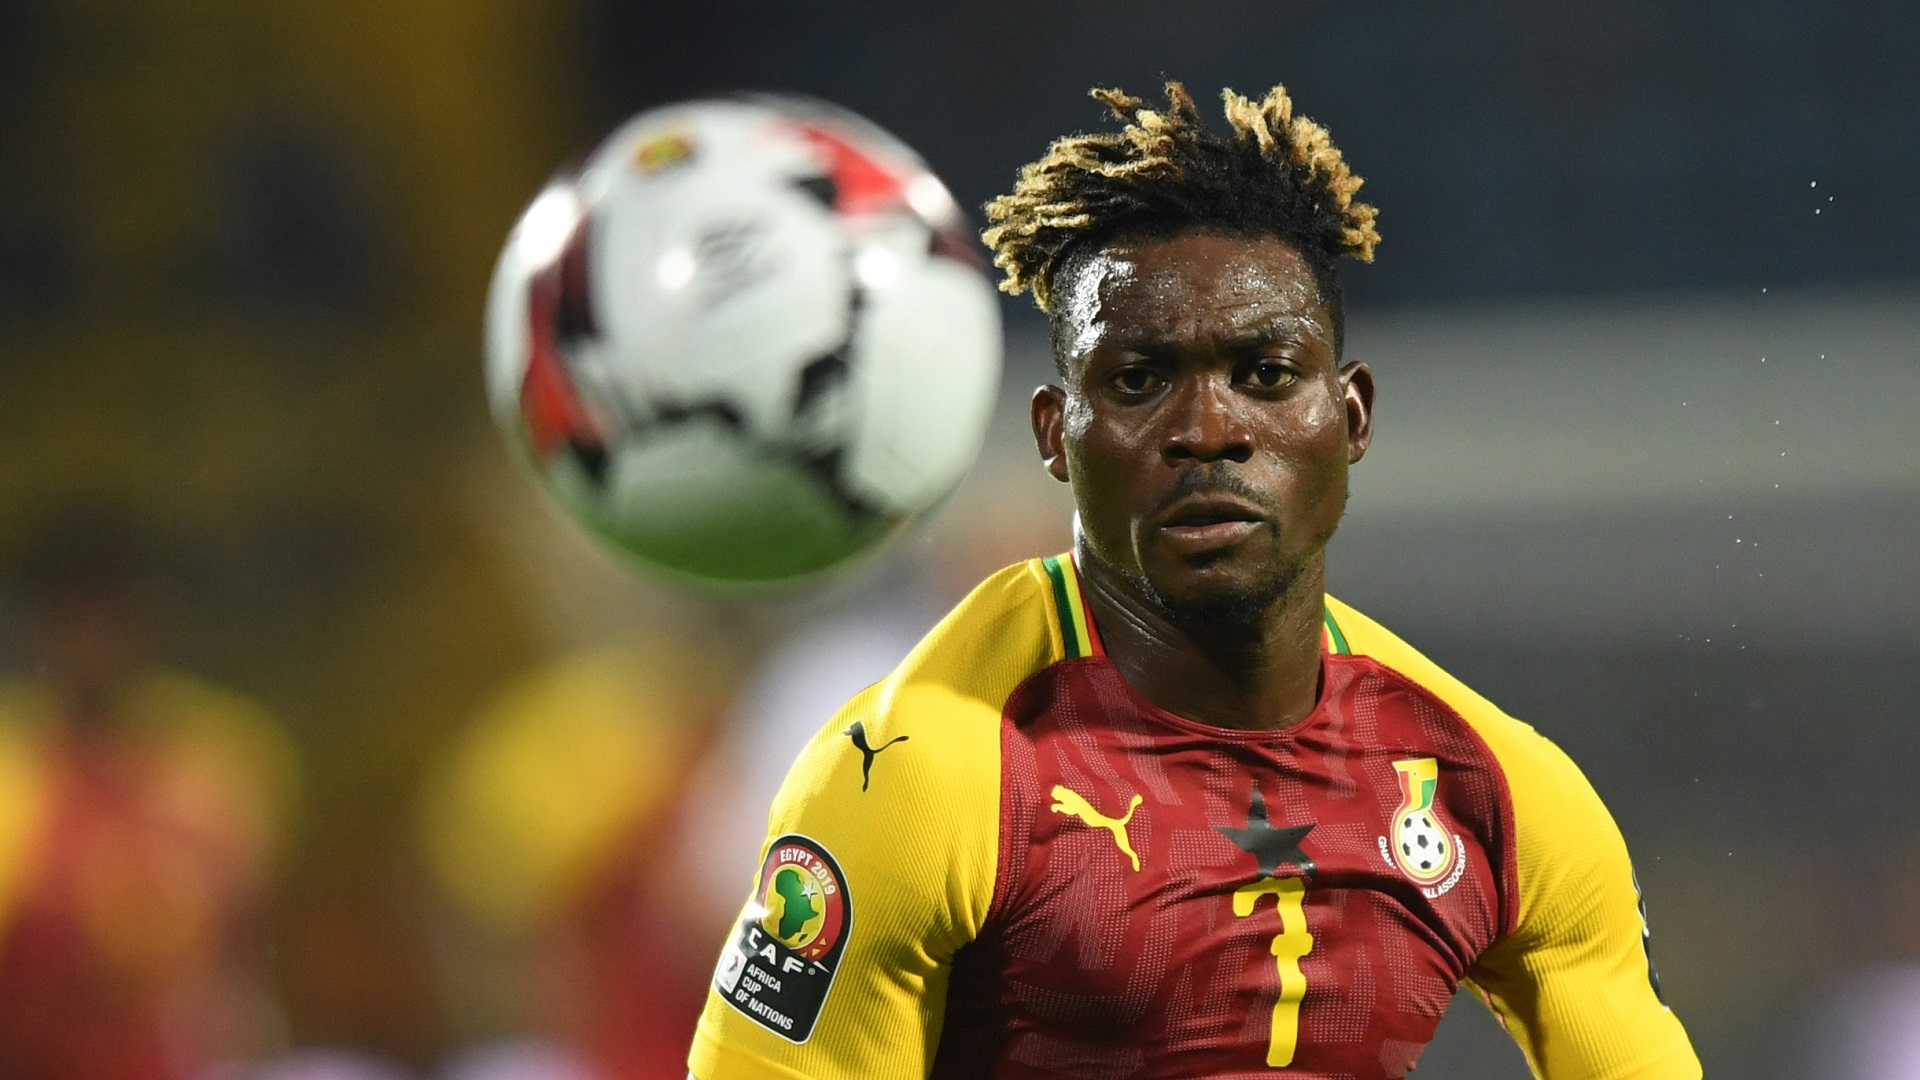 Ghana's Christian Atsu ruled out of AFCON with hamstring injury